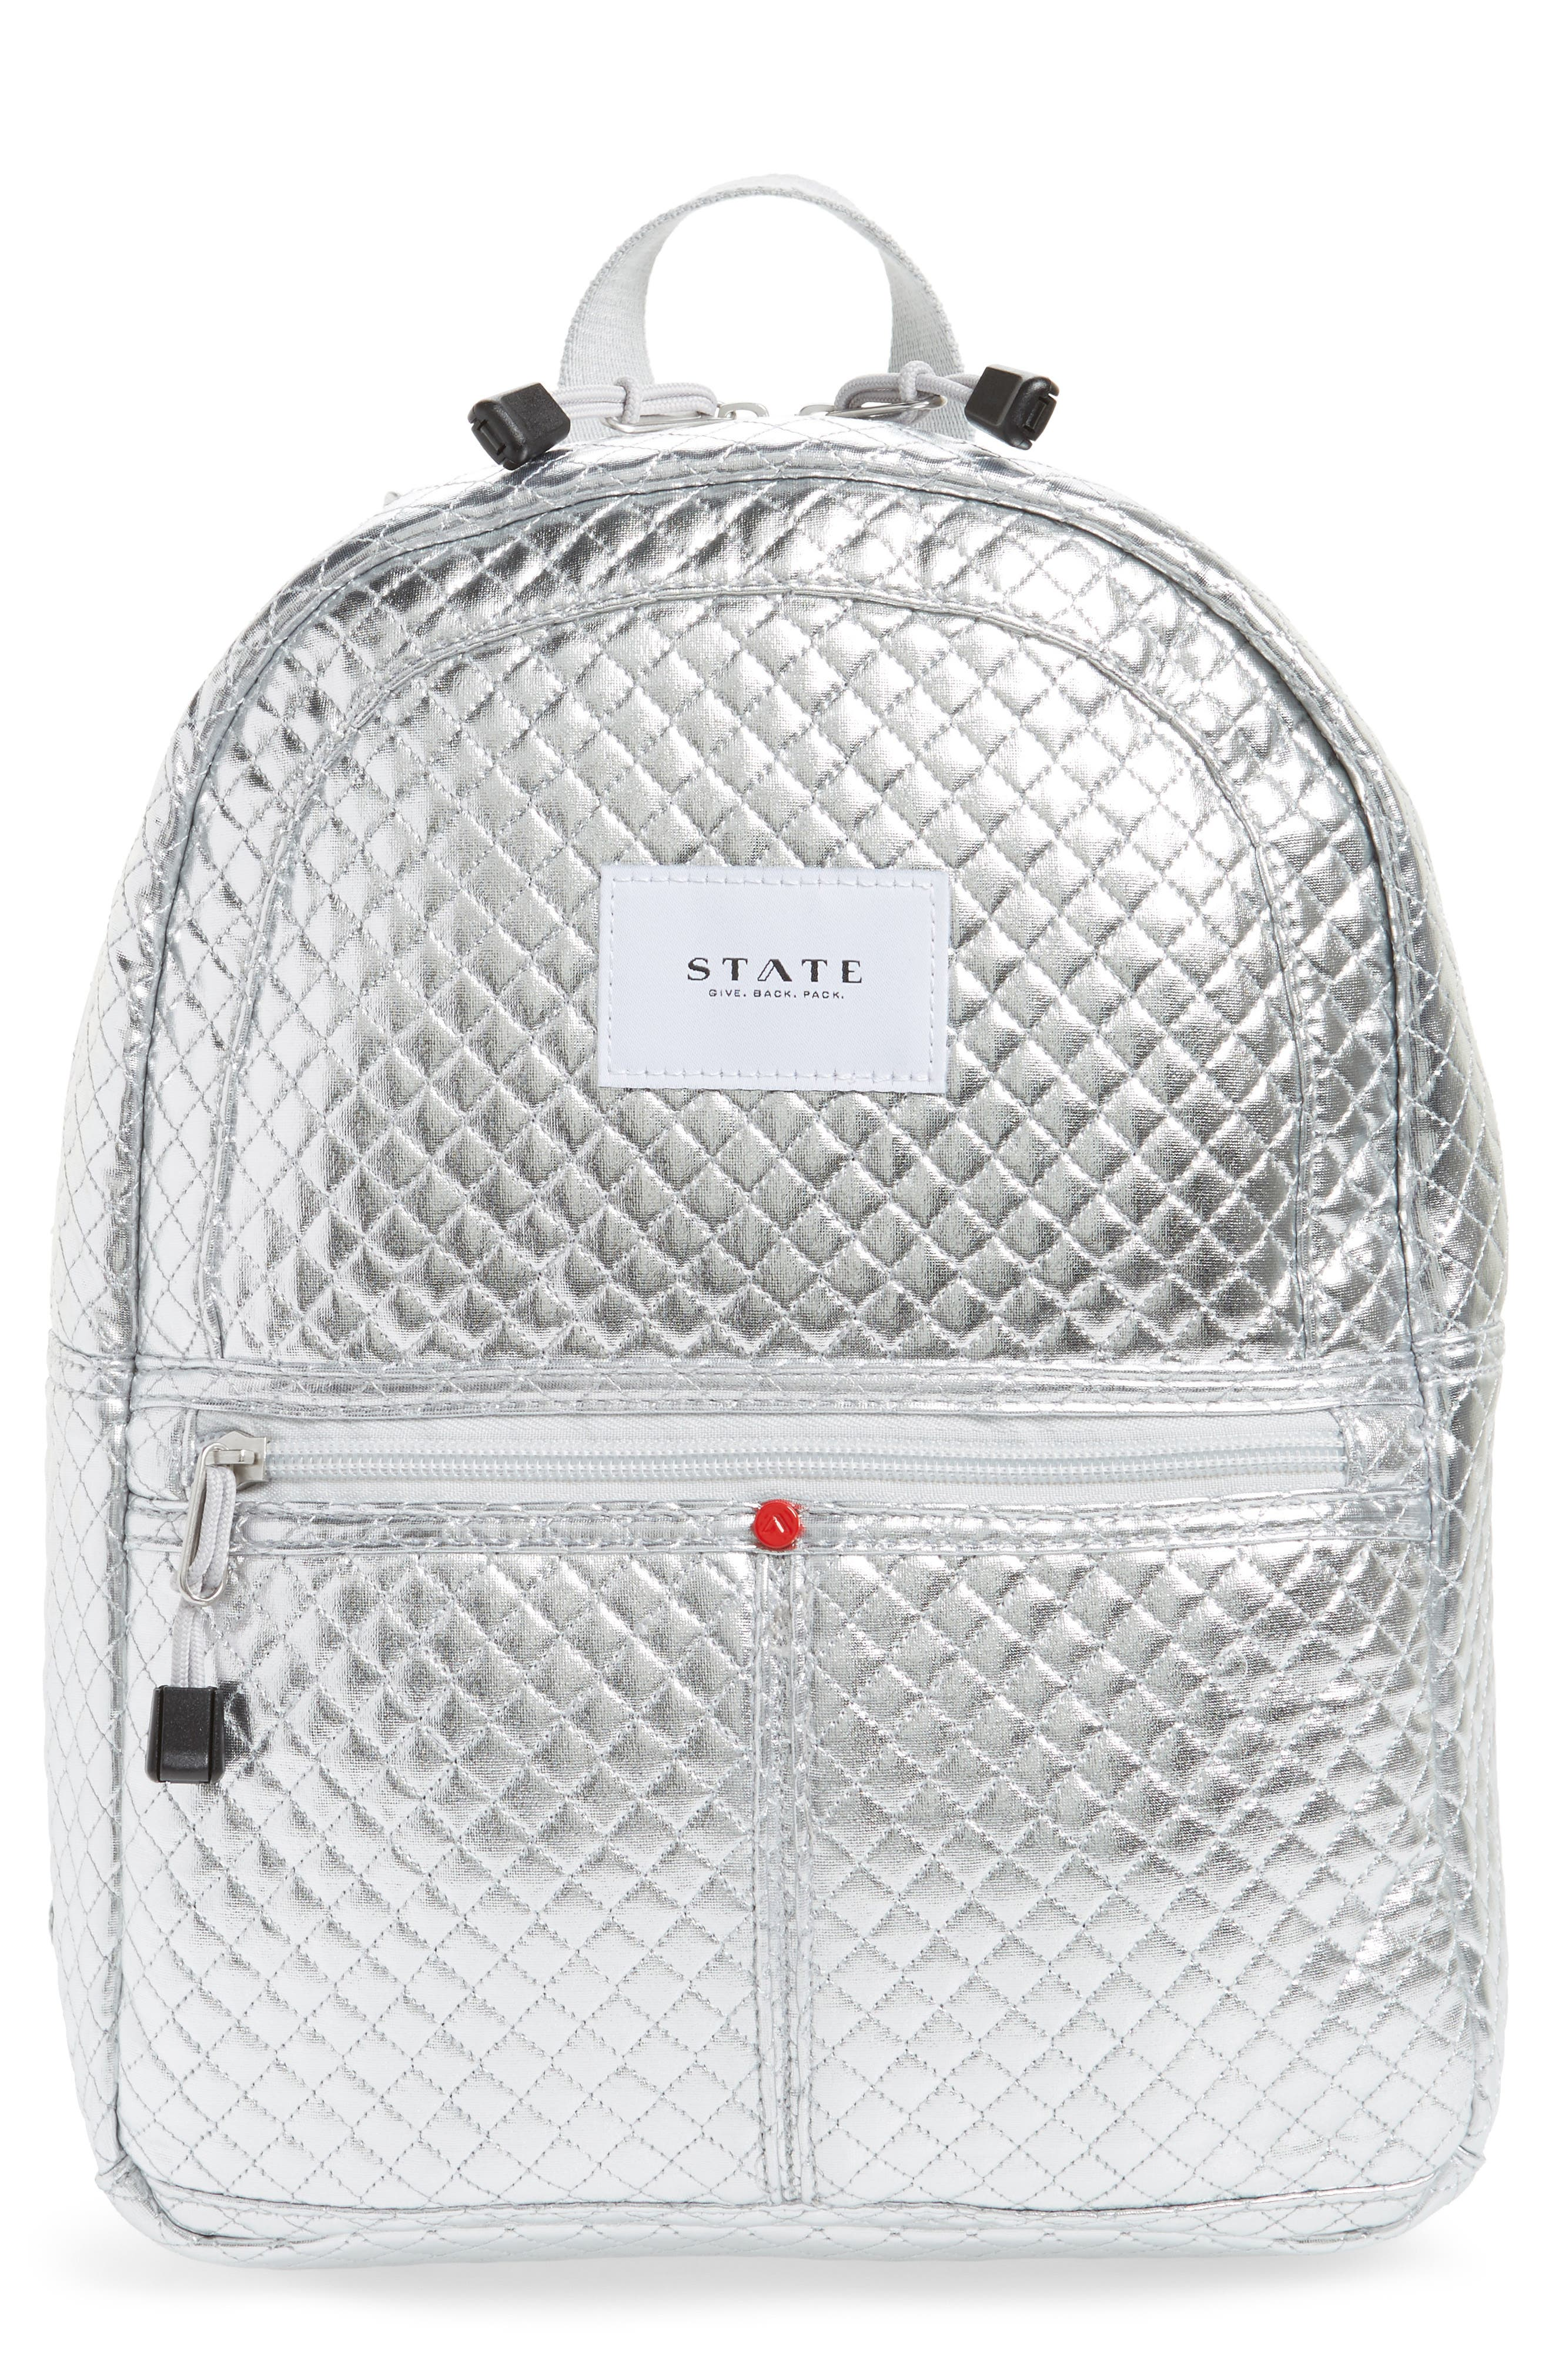 Flatbush Mini Kane Backpack,                             Main thumbnail 1, color,                             Silver Quilted